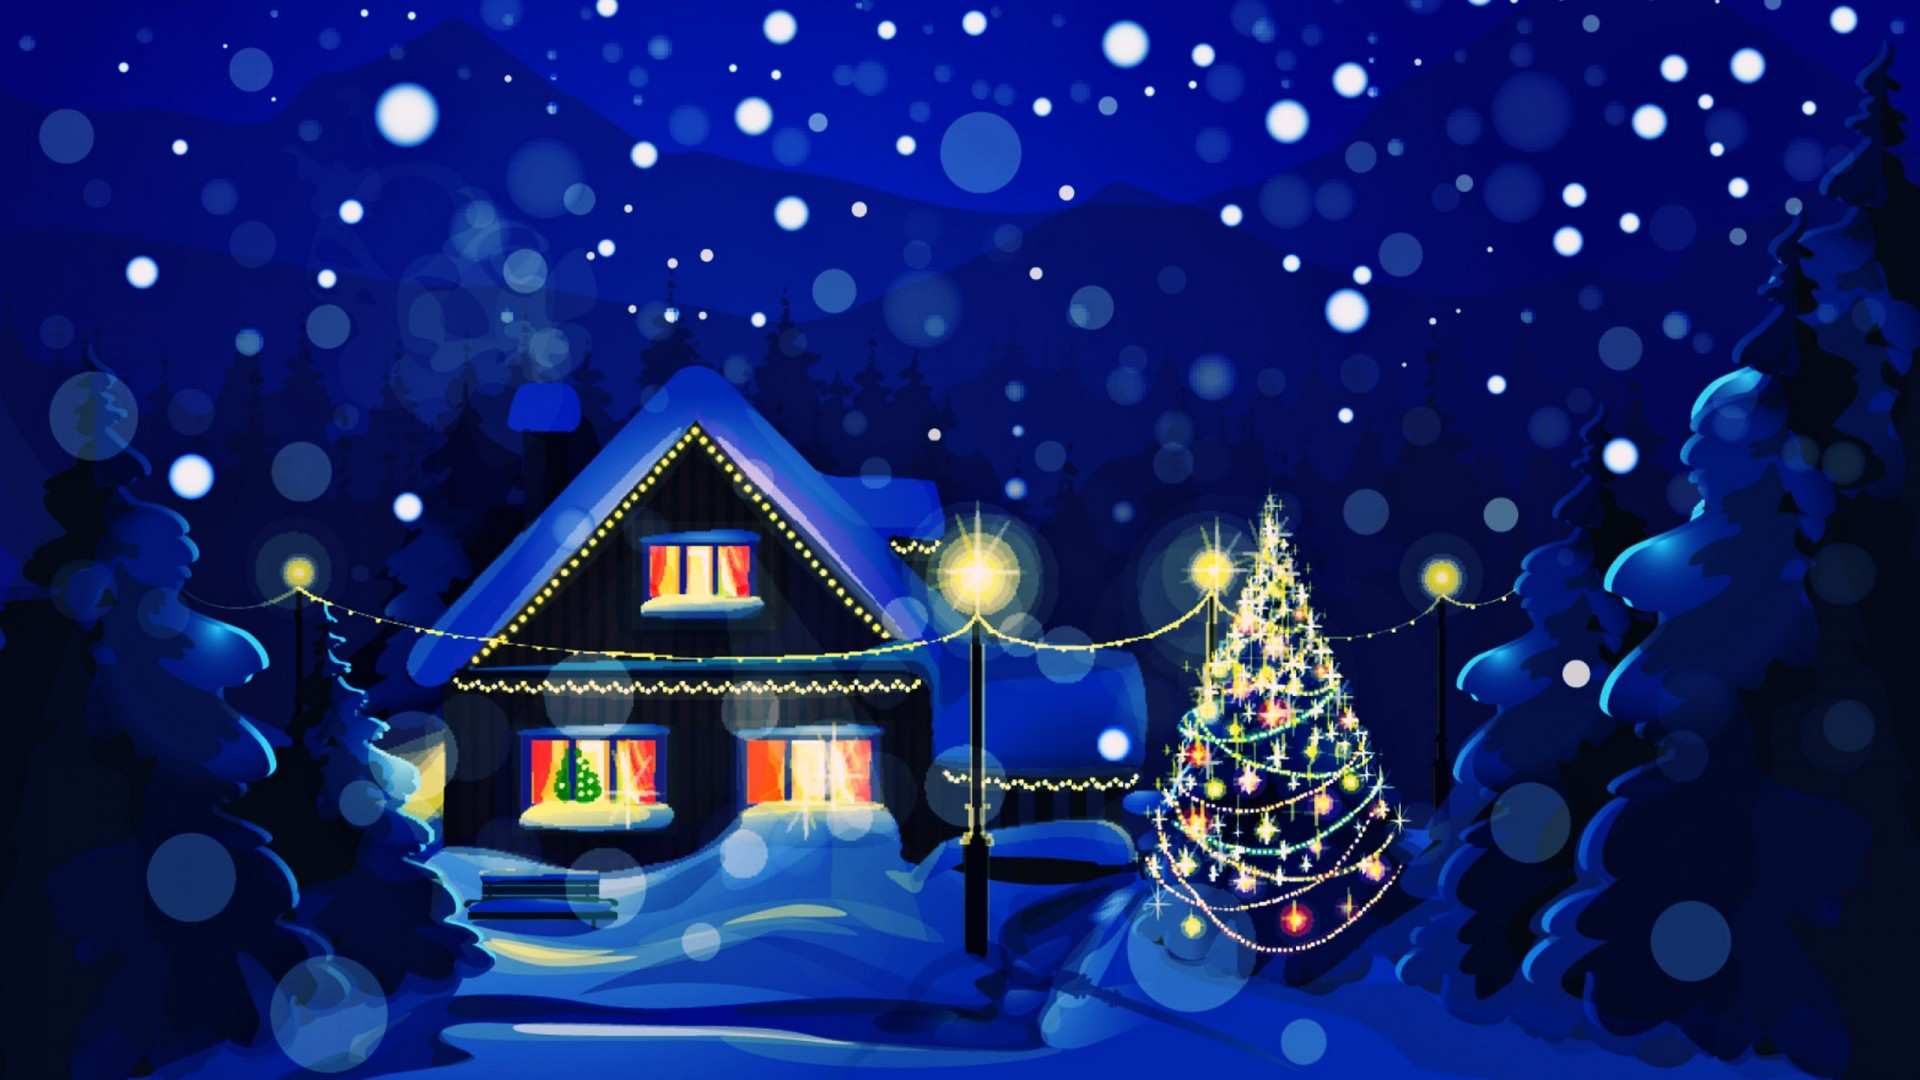 90+ Free Download Cute Christmas Wallpaper Backgrounds